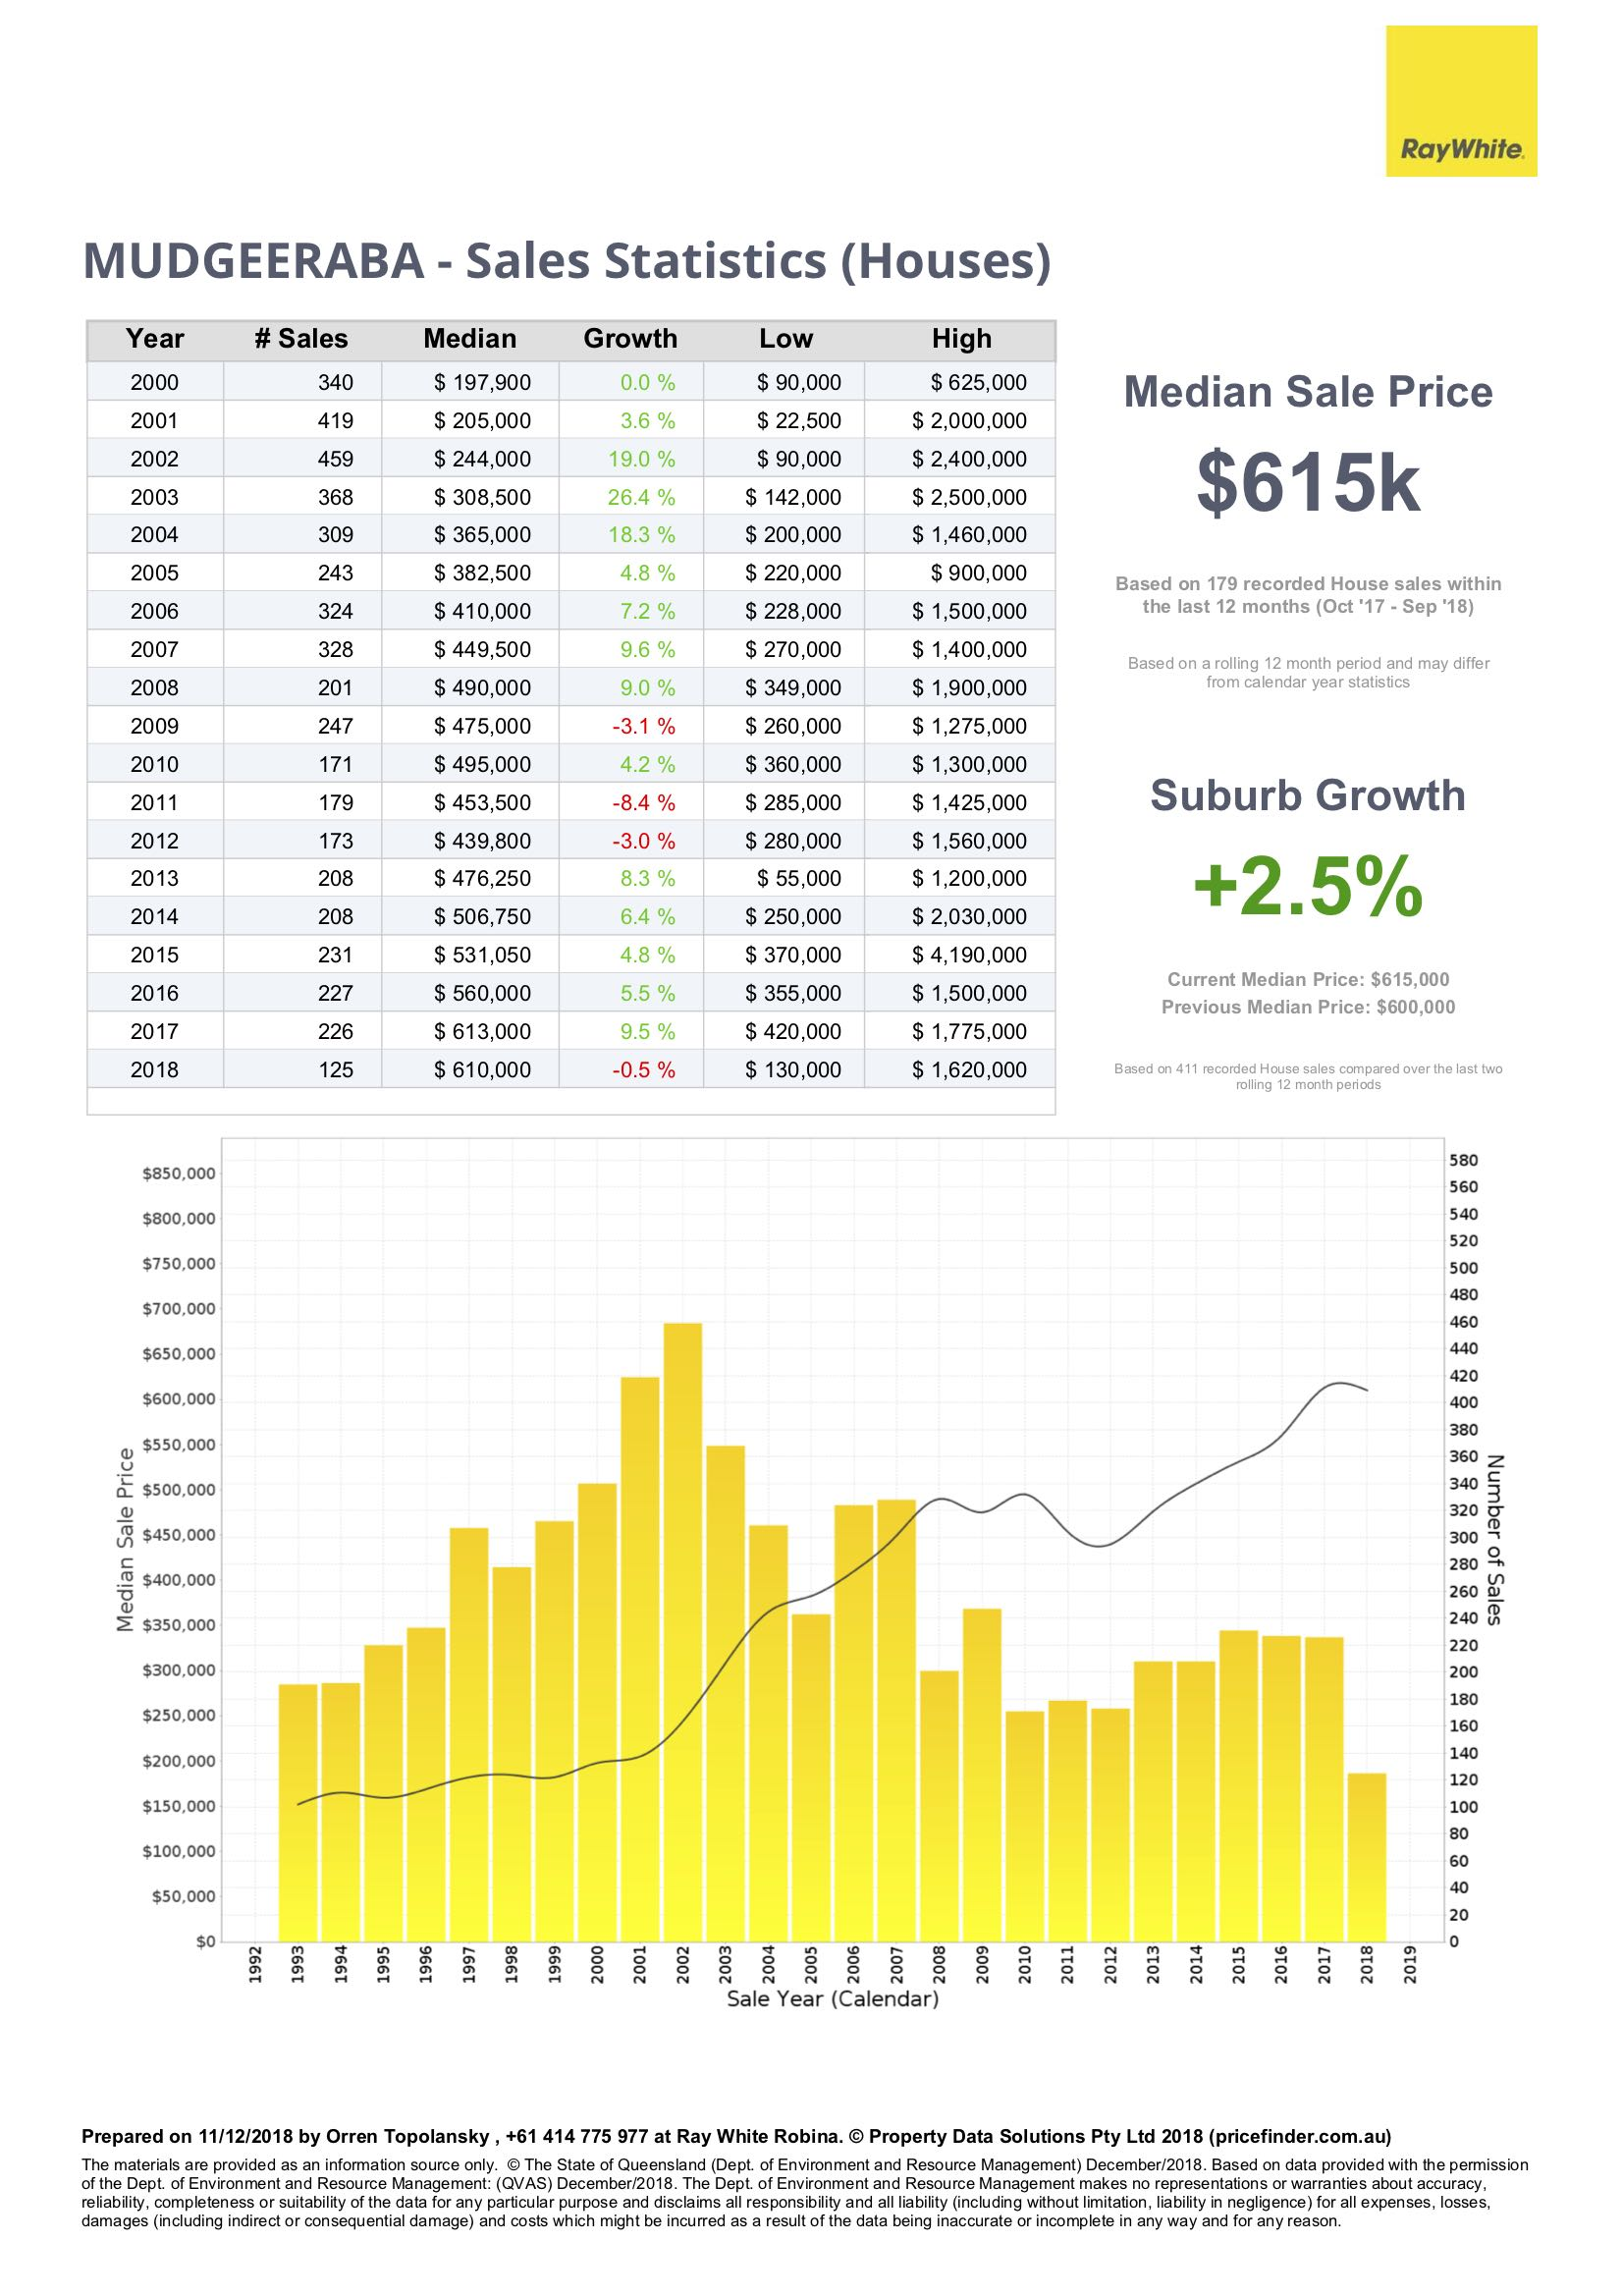 Sales statistics for houses in Mudgeeraba, Gold Coast QLD